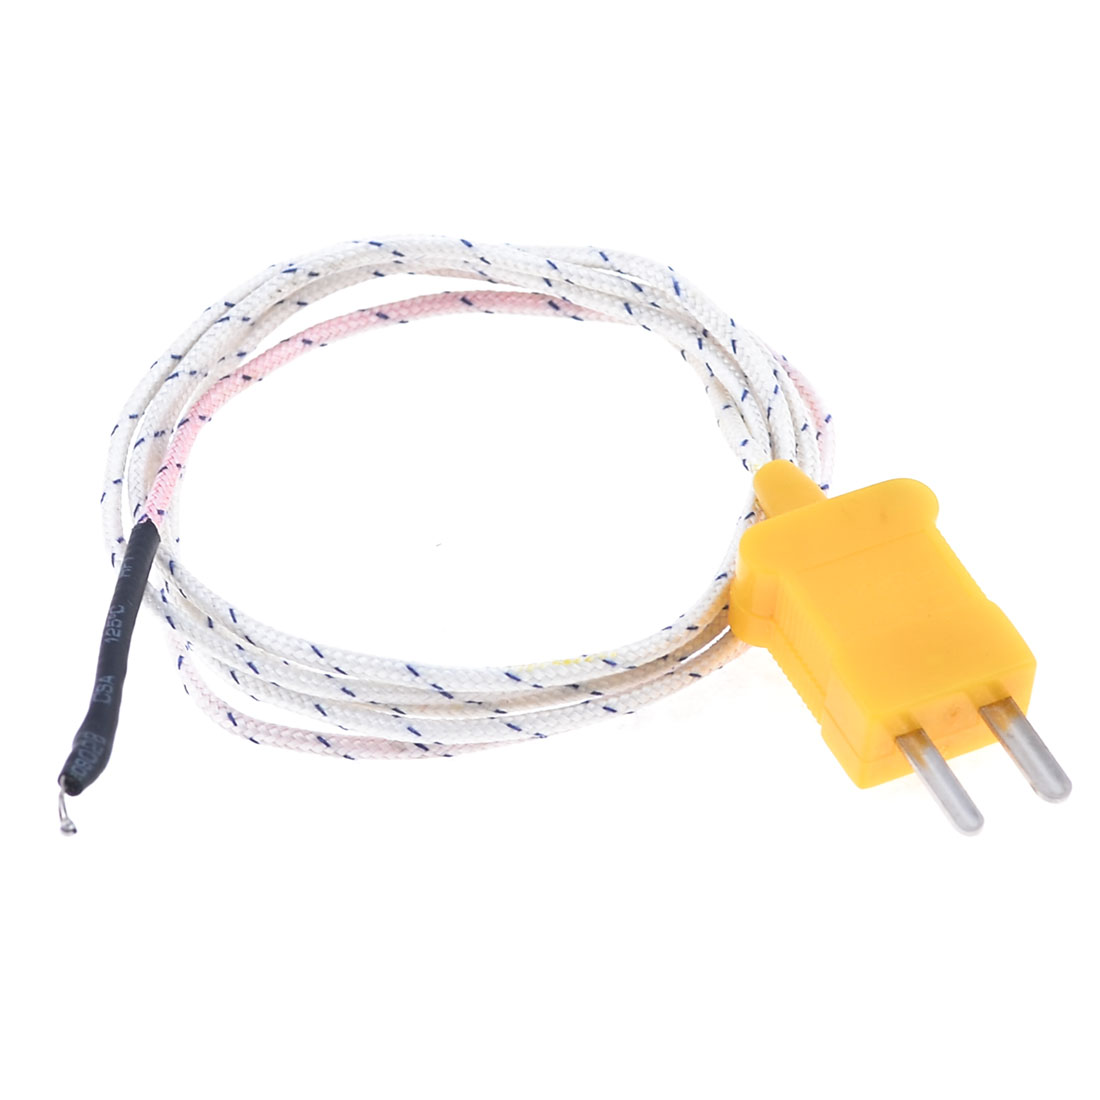 "Insustrial TP01K Thermocouple Temperature Sensor Wire 38.4"" Length"